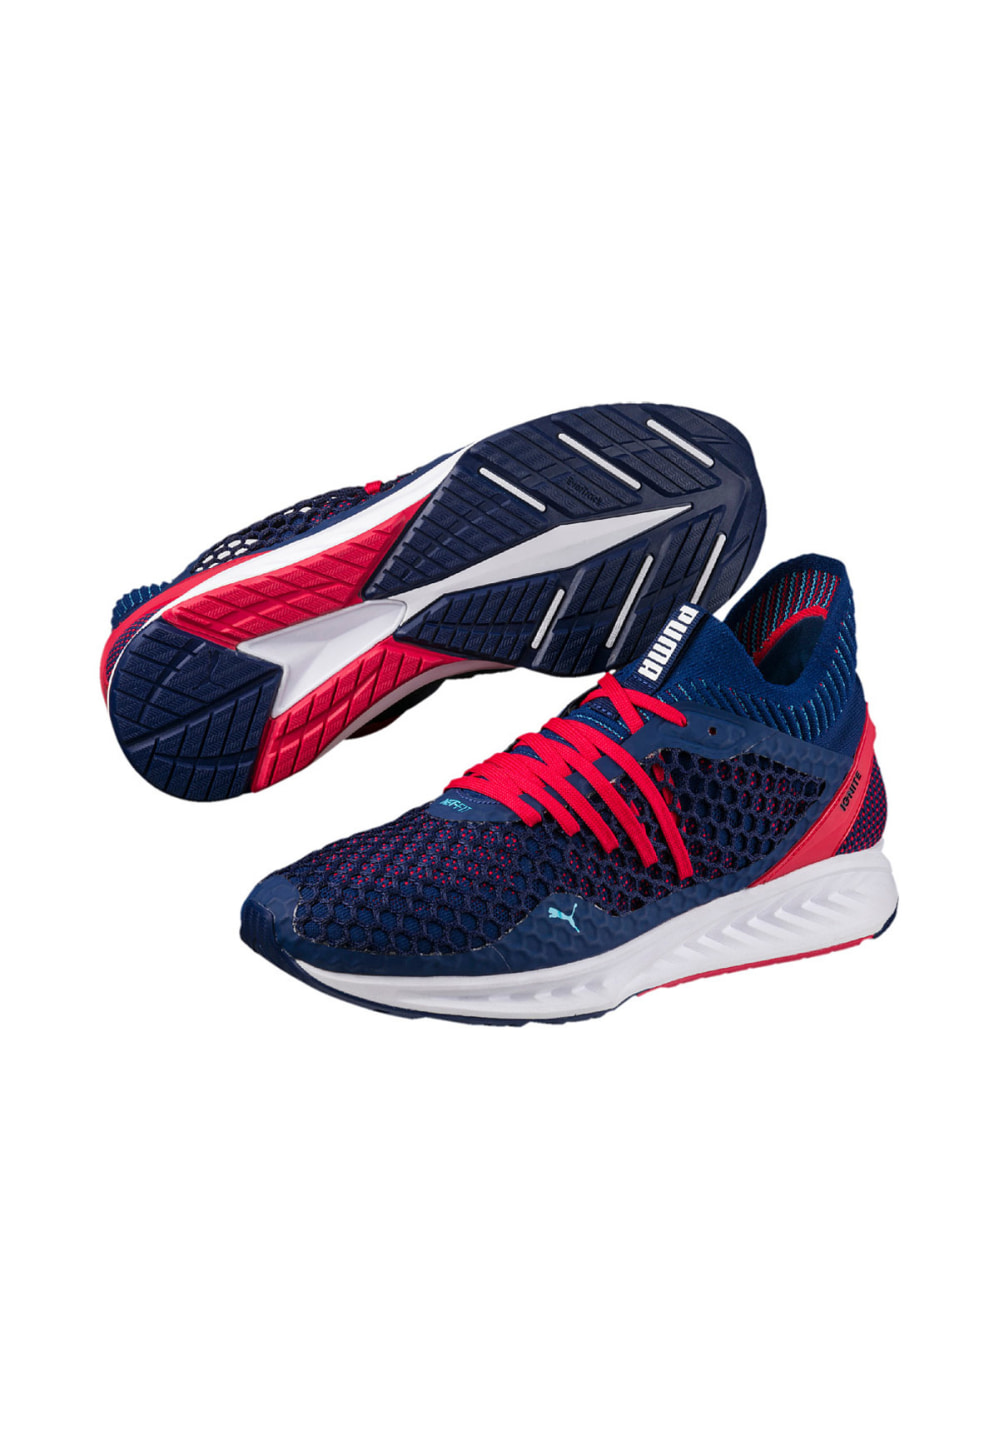 0078db5b885 Previous. Next. -60%. Puma. IGNITE NETFIT - Running shoes for Men. Regular  Price  Save 60% €129.95. Special Price €51.98